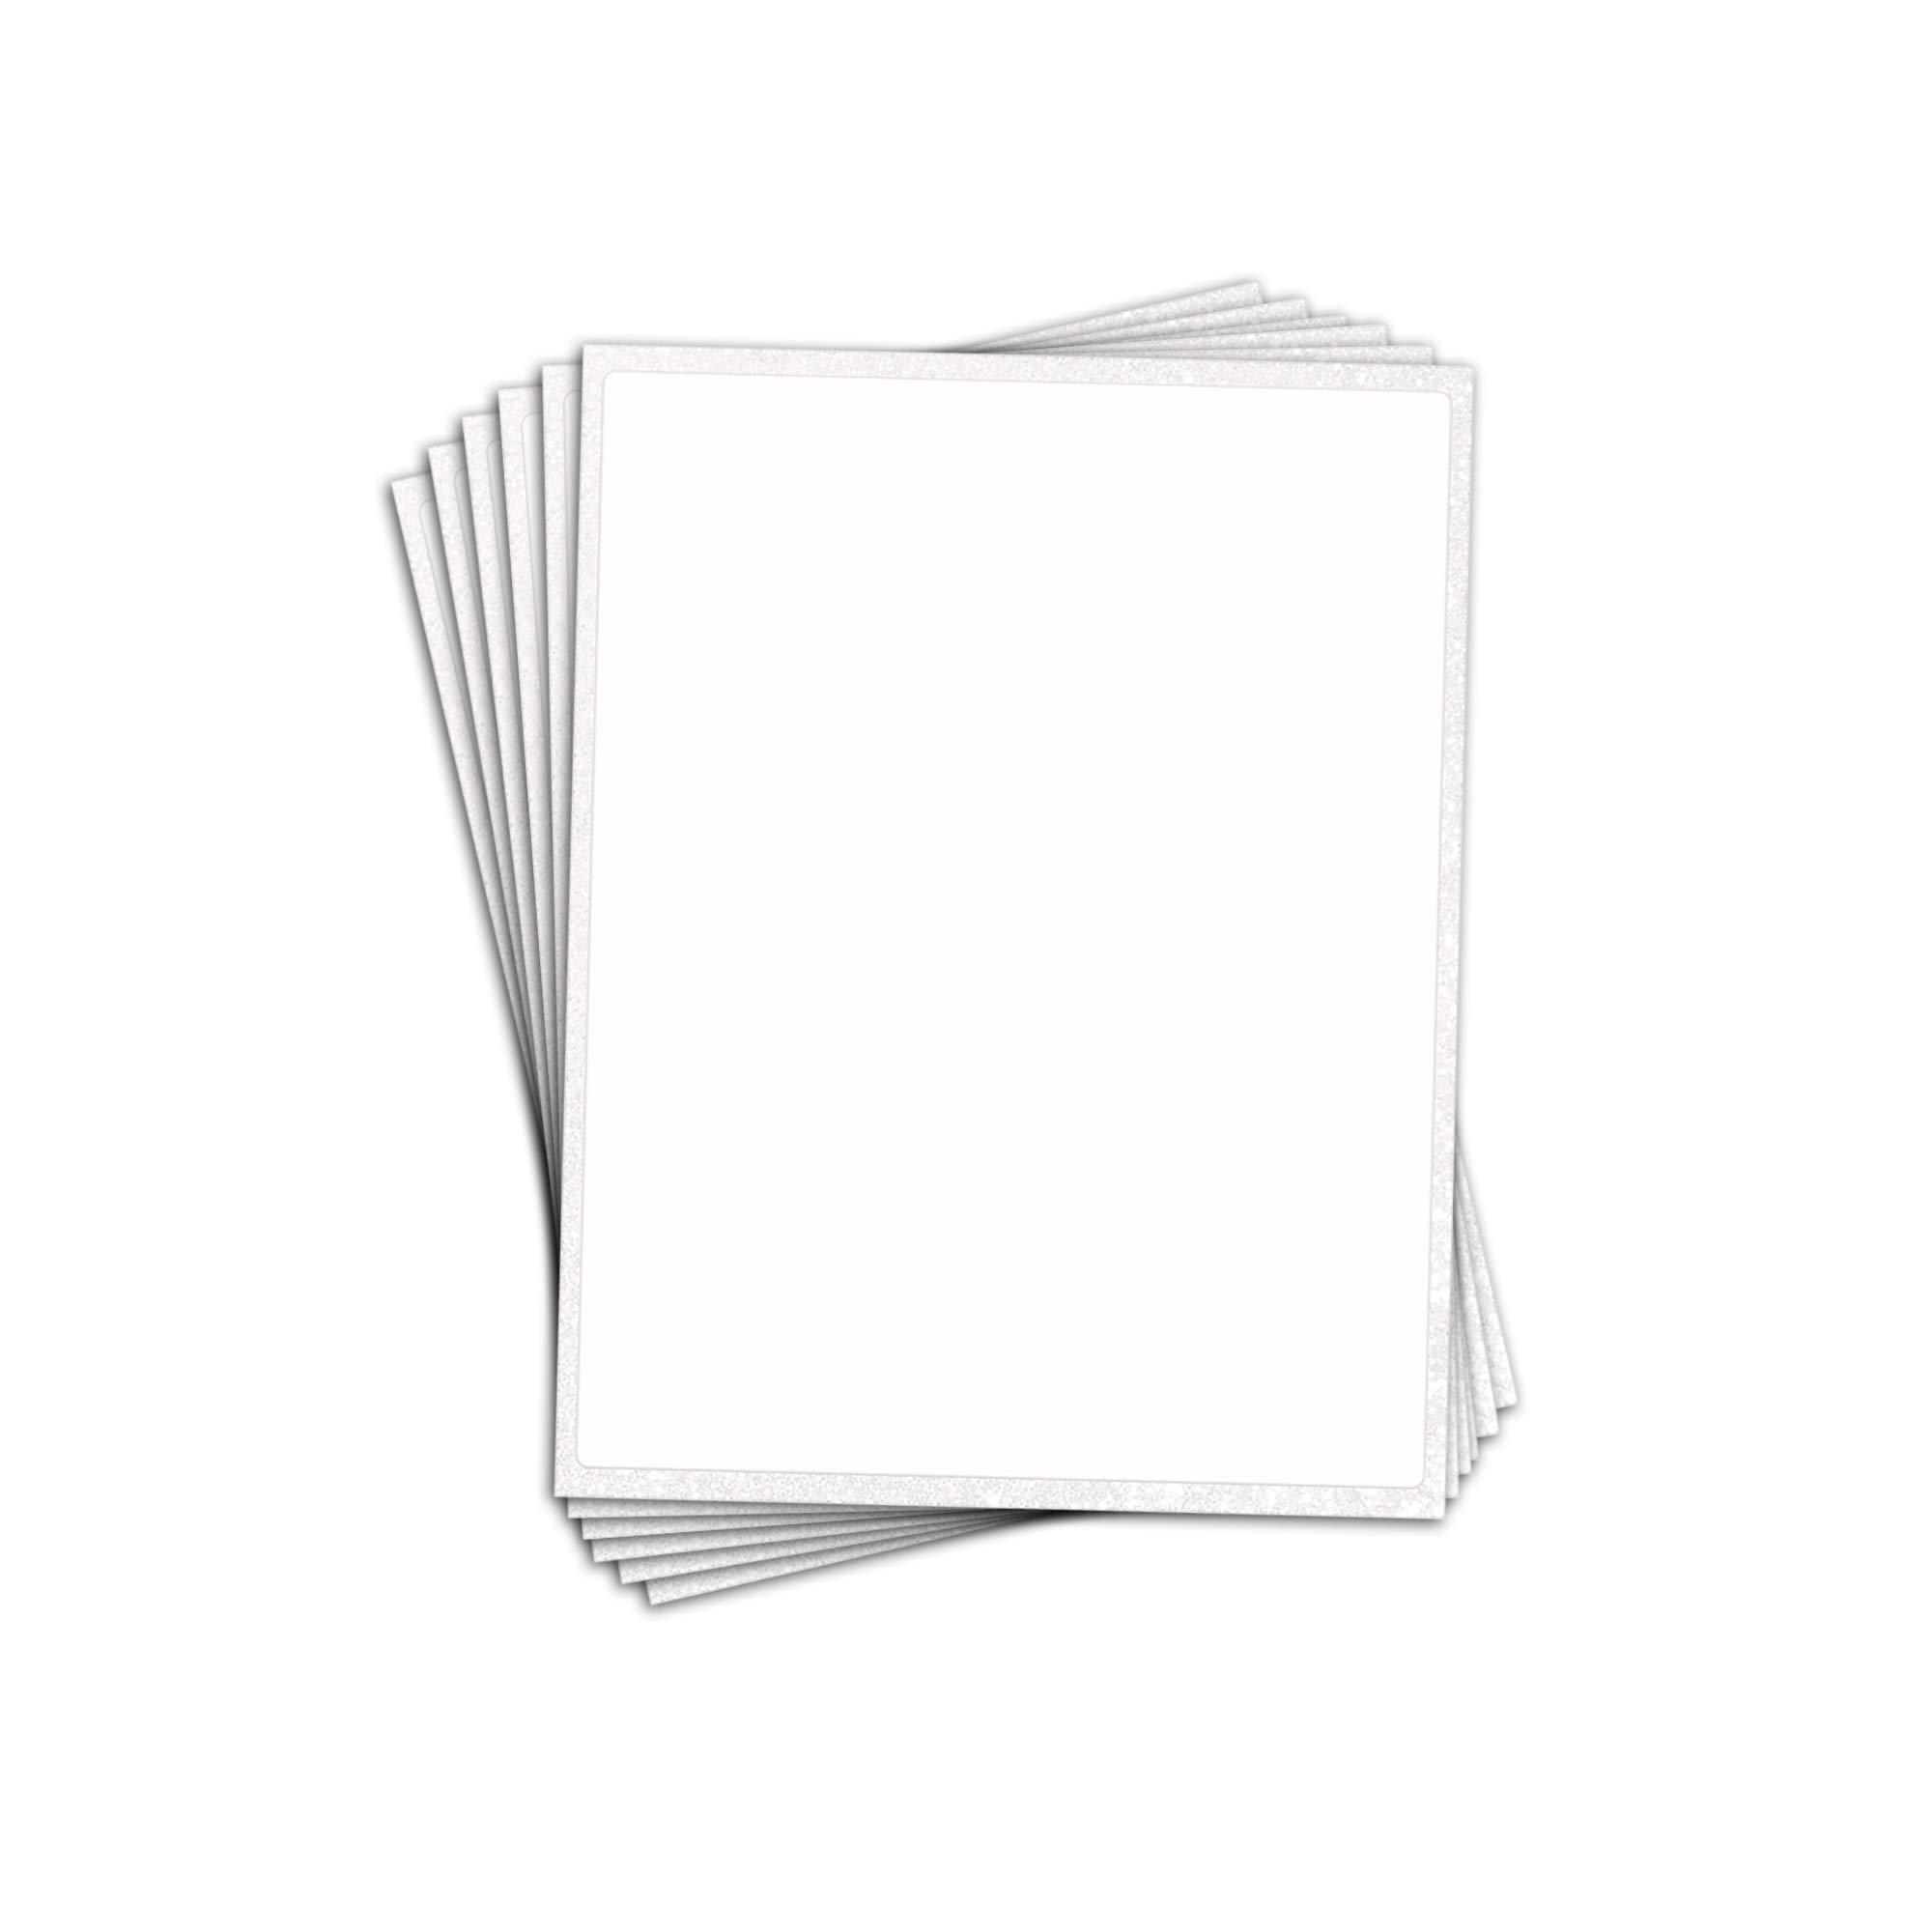 Frosting Sheets by Tasty Imaginations - 11x17 Inch Half Sheet Cake Size Icing Sheets 6 Pack